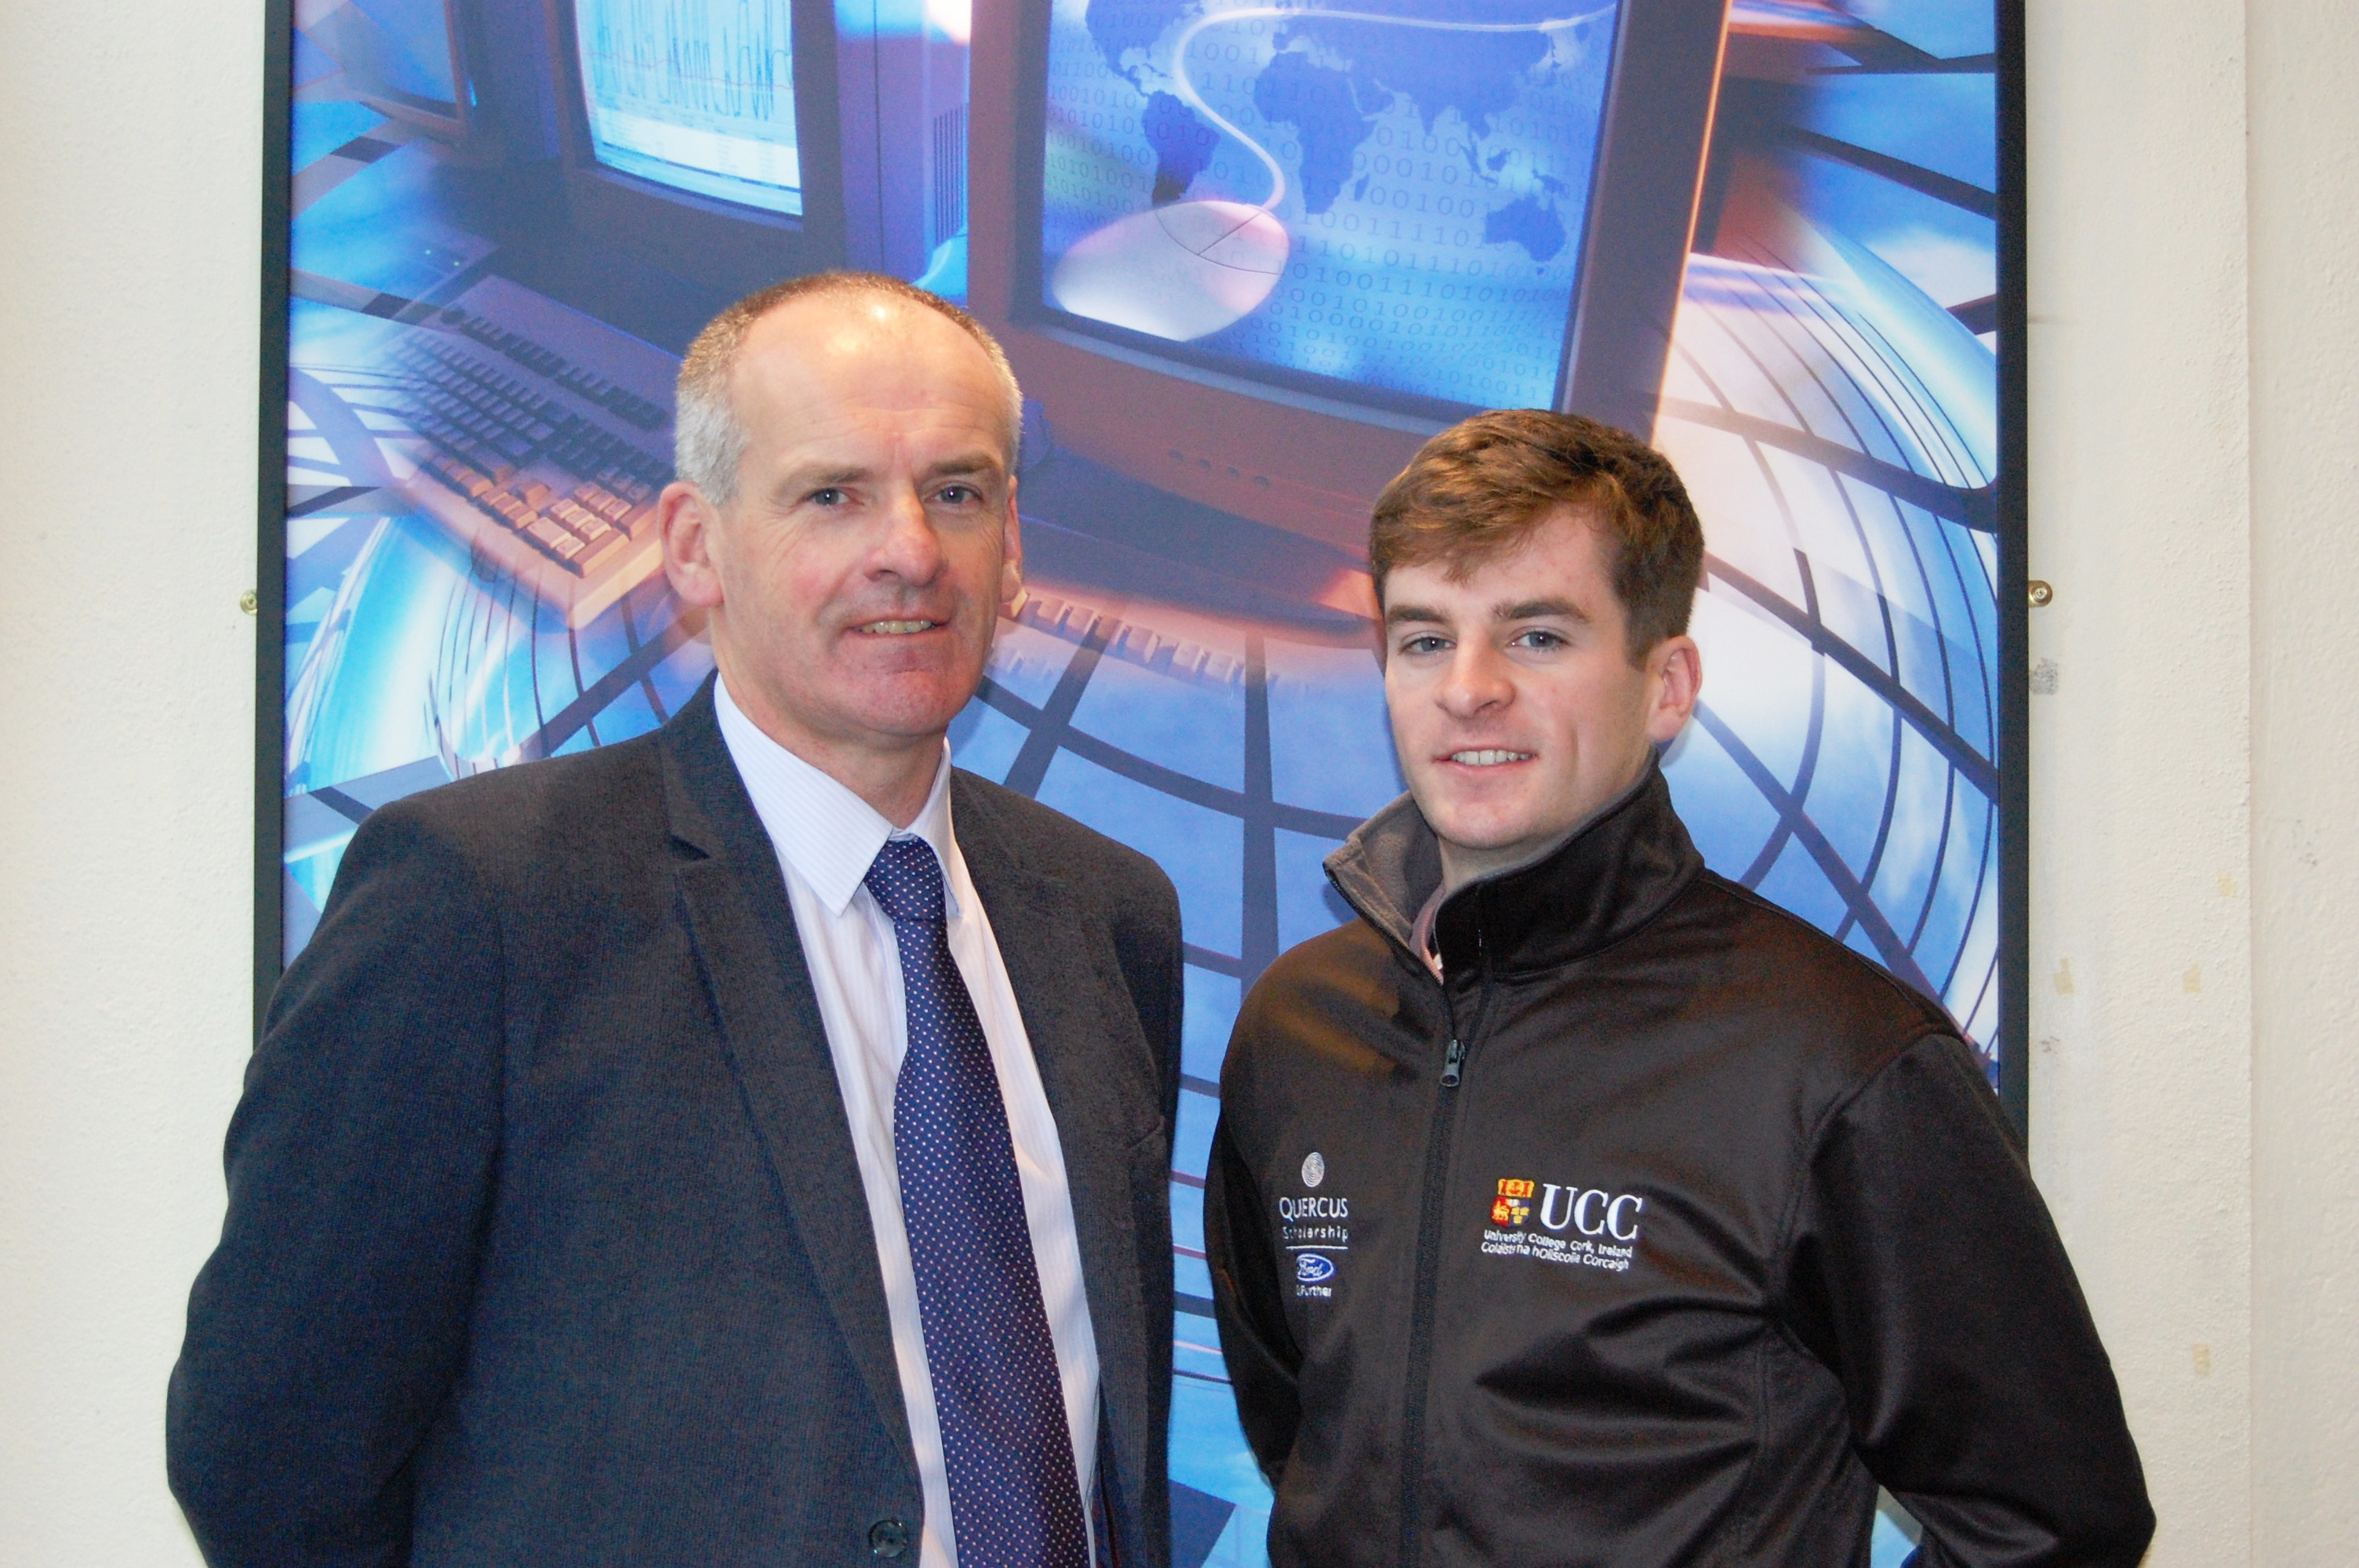 Quercus Scholarship Awarded to School of Engineering Student